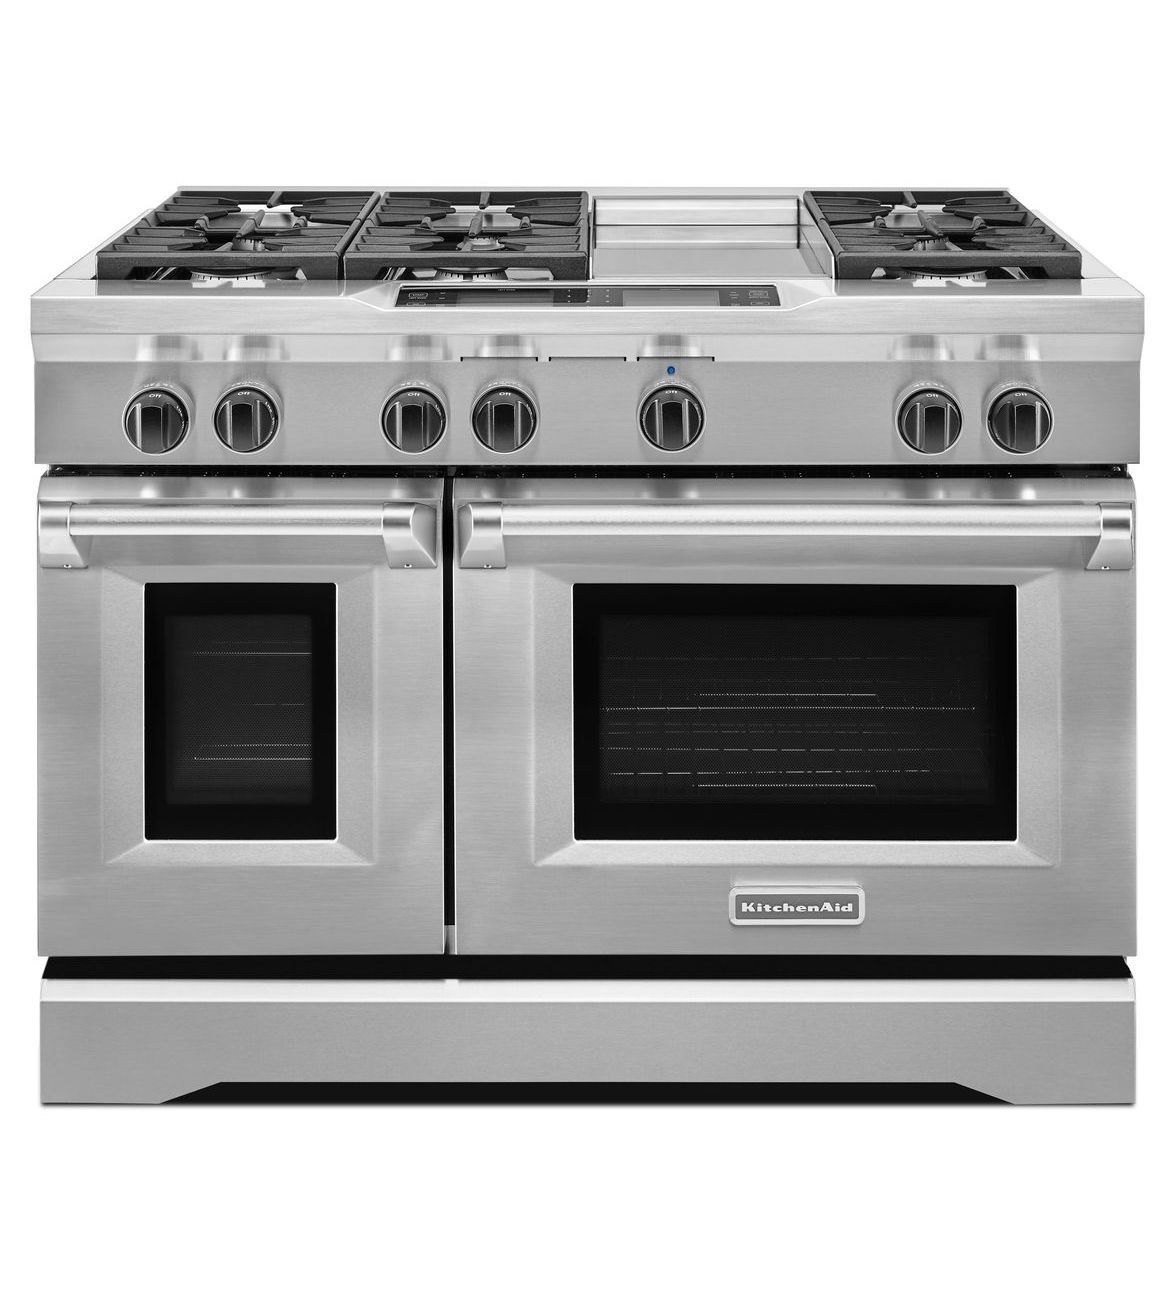 48 inch 6 burner with steam assist oven dual fuel